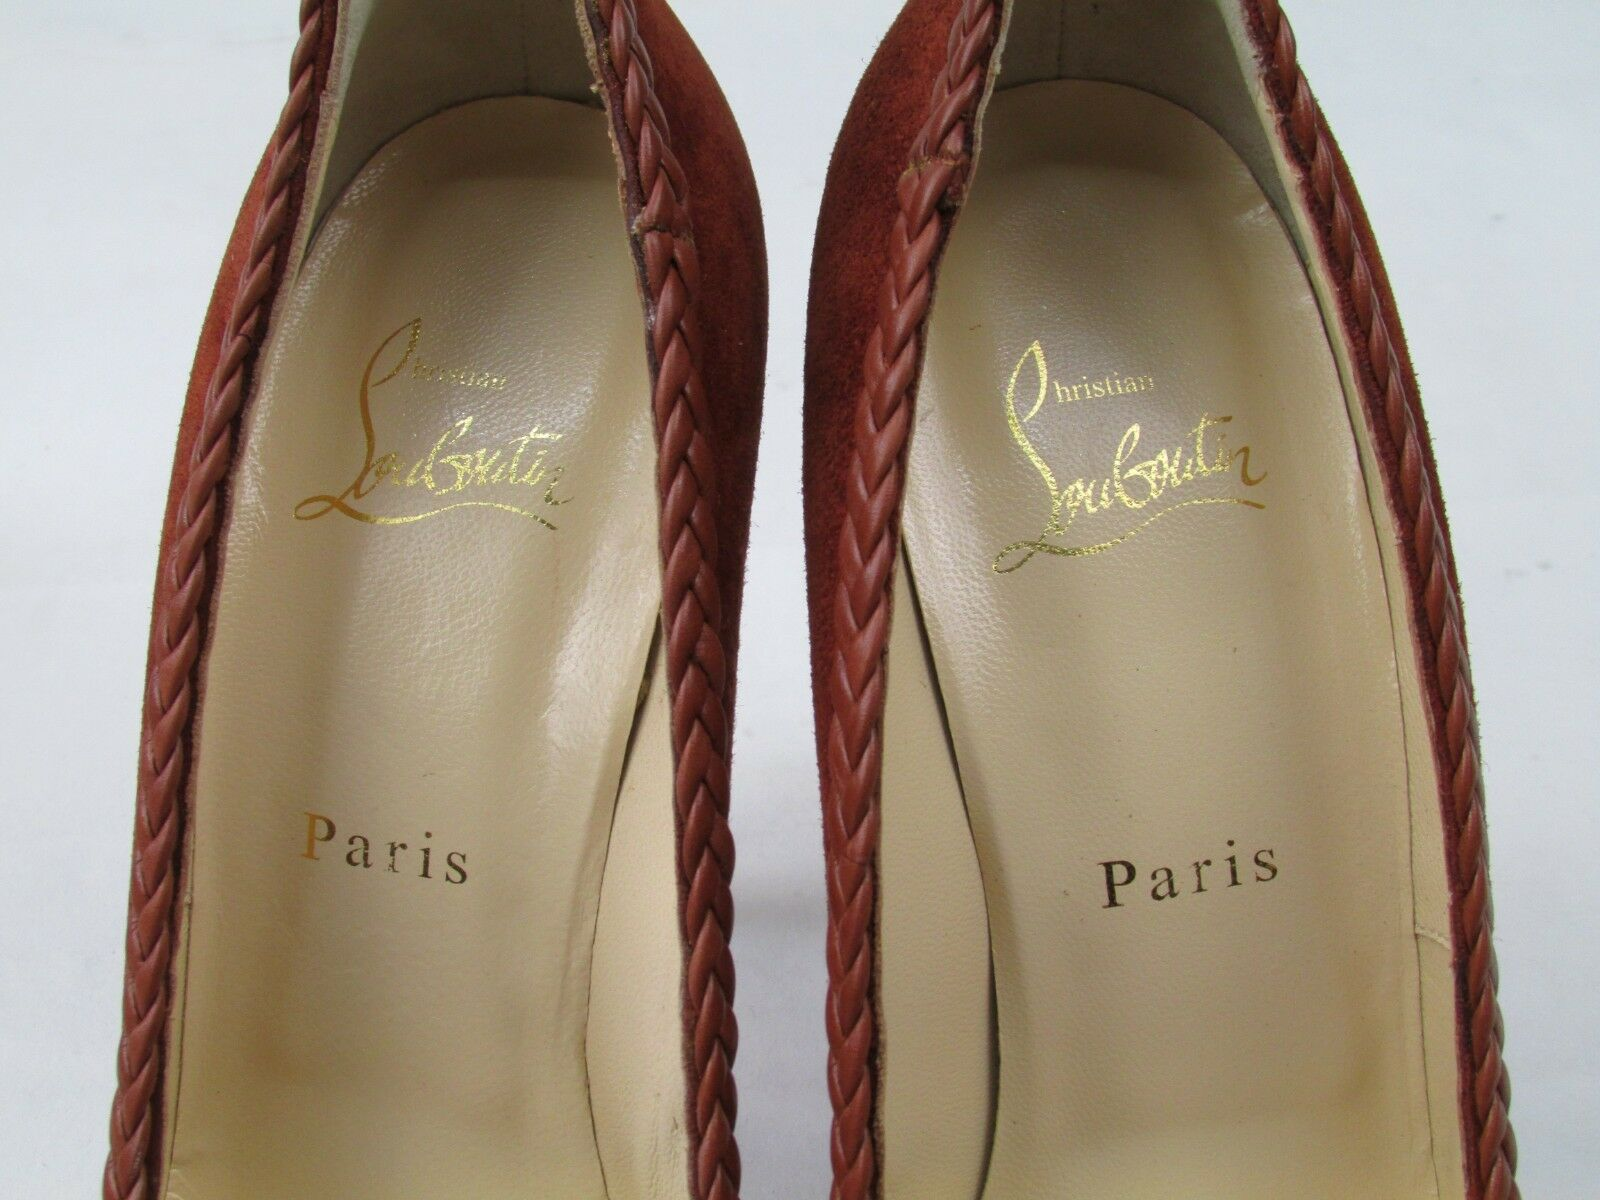 Christian Louboutin Vizir Pump 140 Veau Velours/Calf BNWB Heels 38.5 UK 5.5 BNWB Velours/Calf 43c5bb